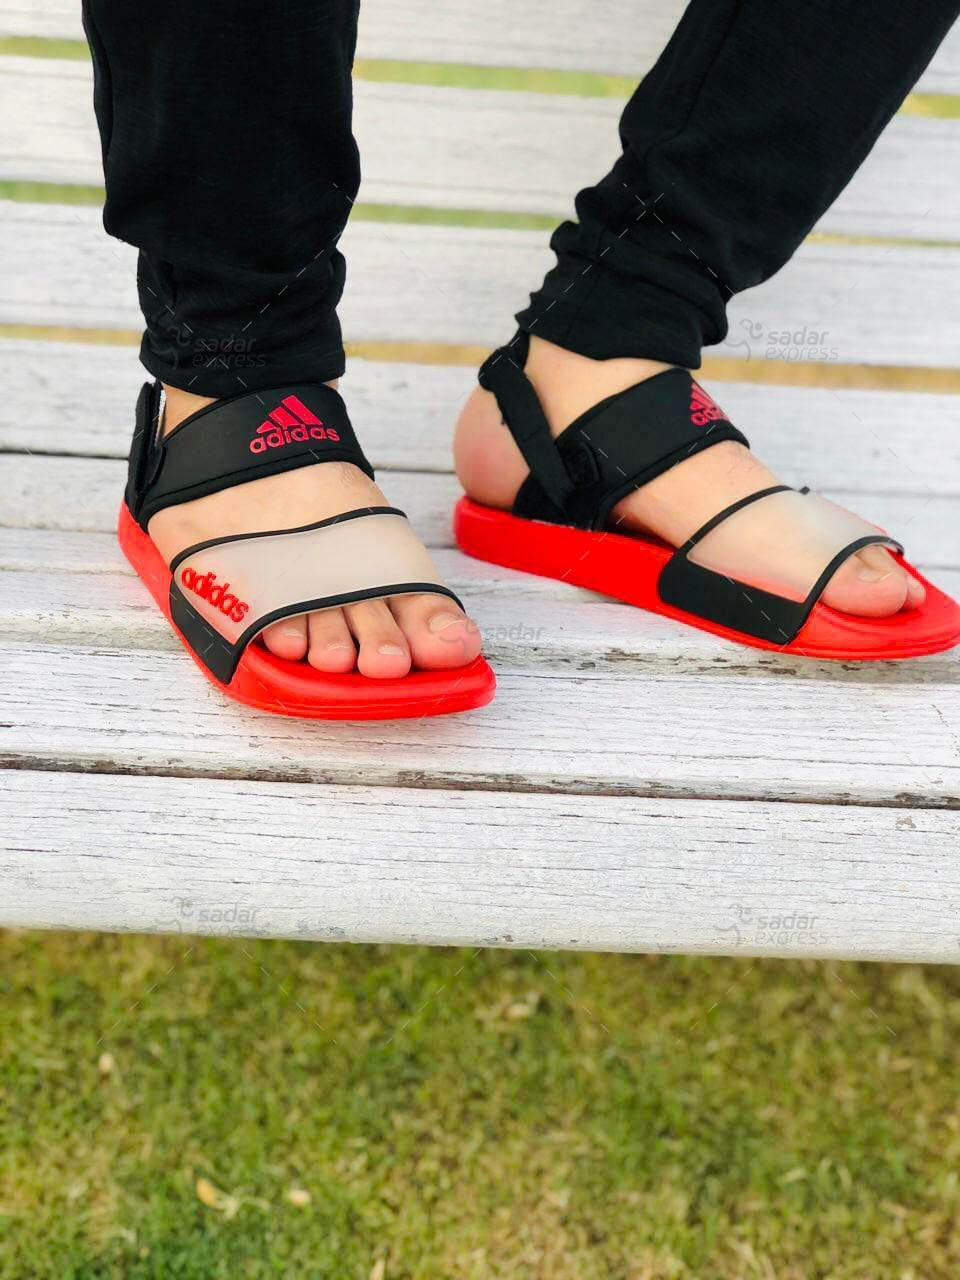 sports silicon rubber sandal for men 4